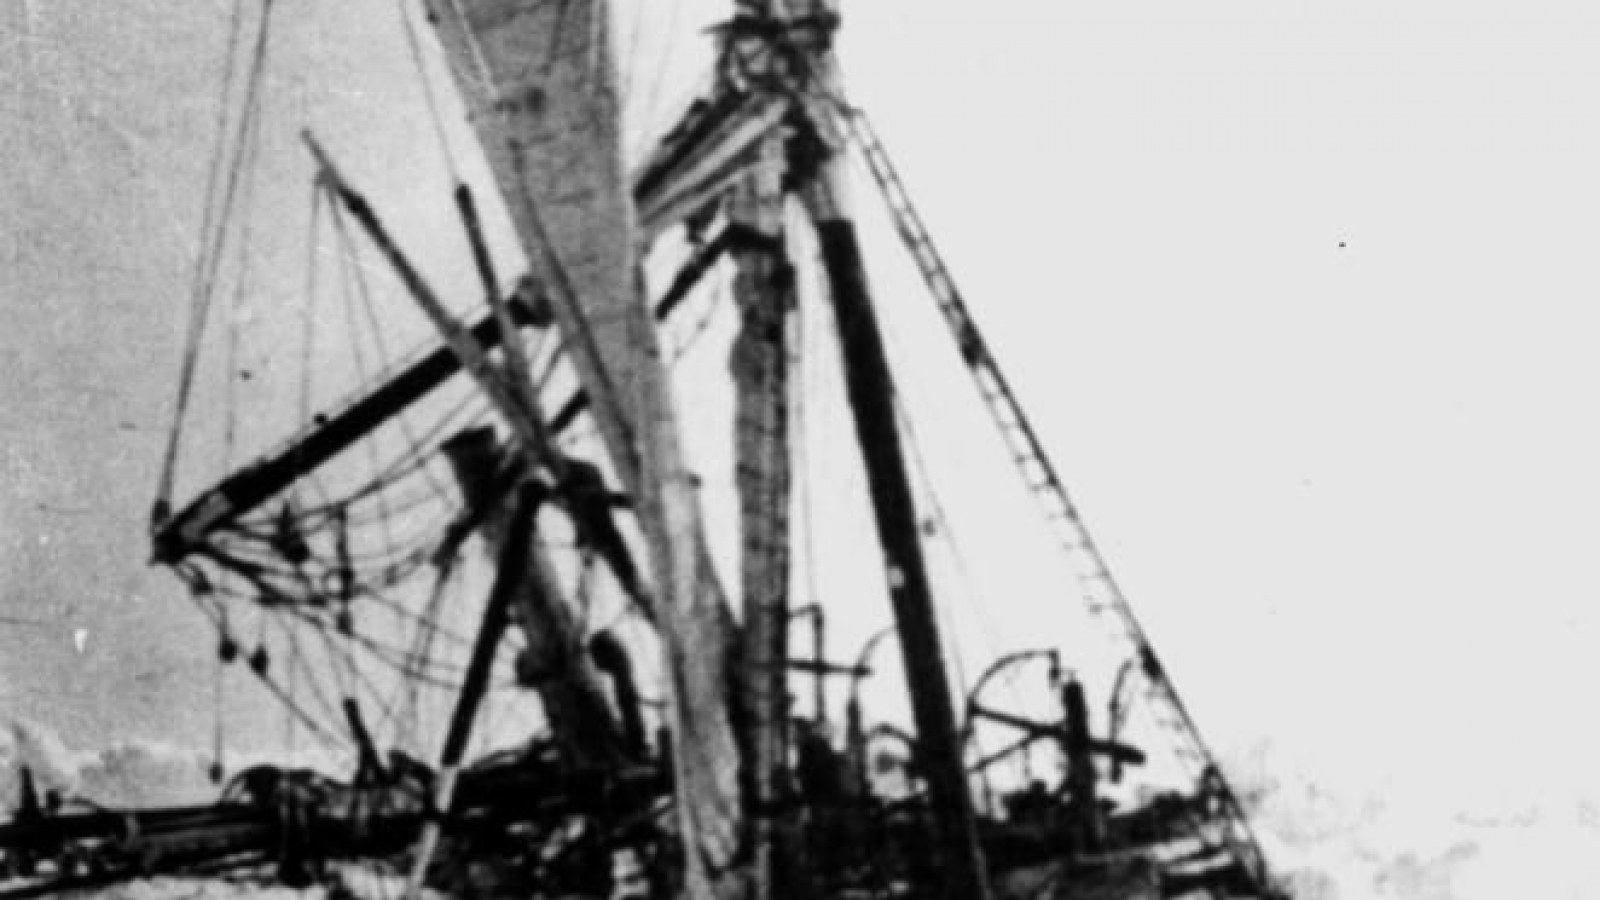 A Long Lost Ship in the Antarctic May Finally Be Found on